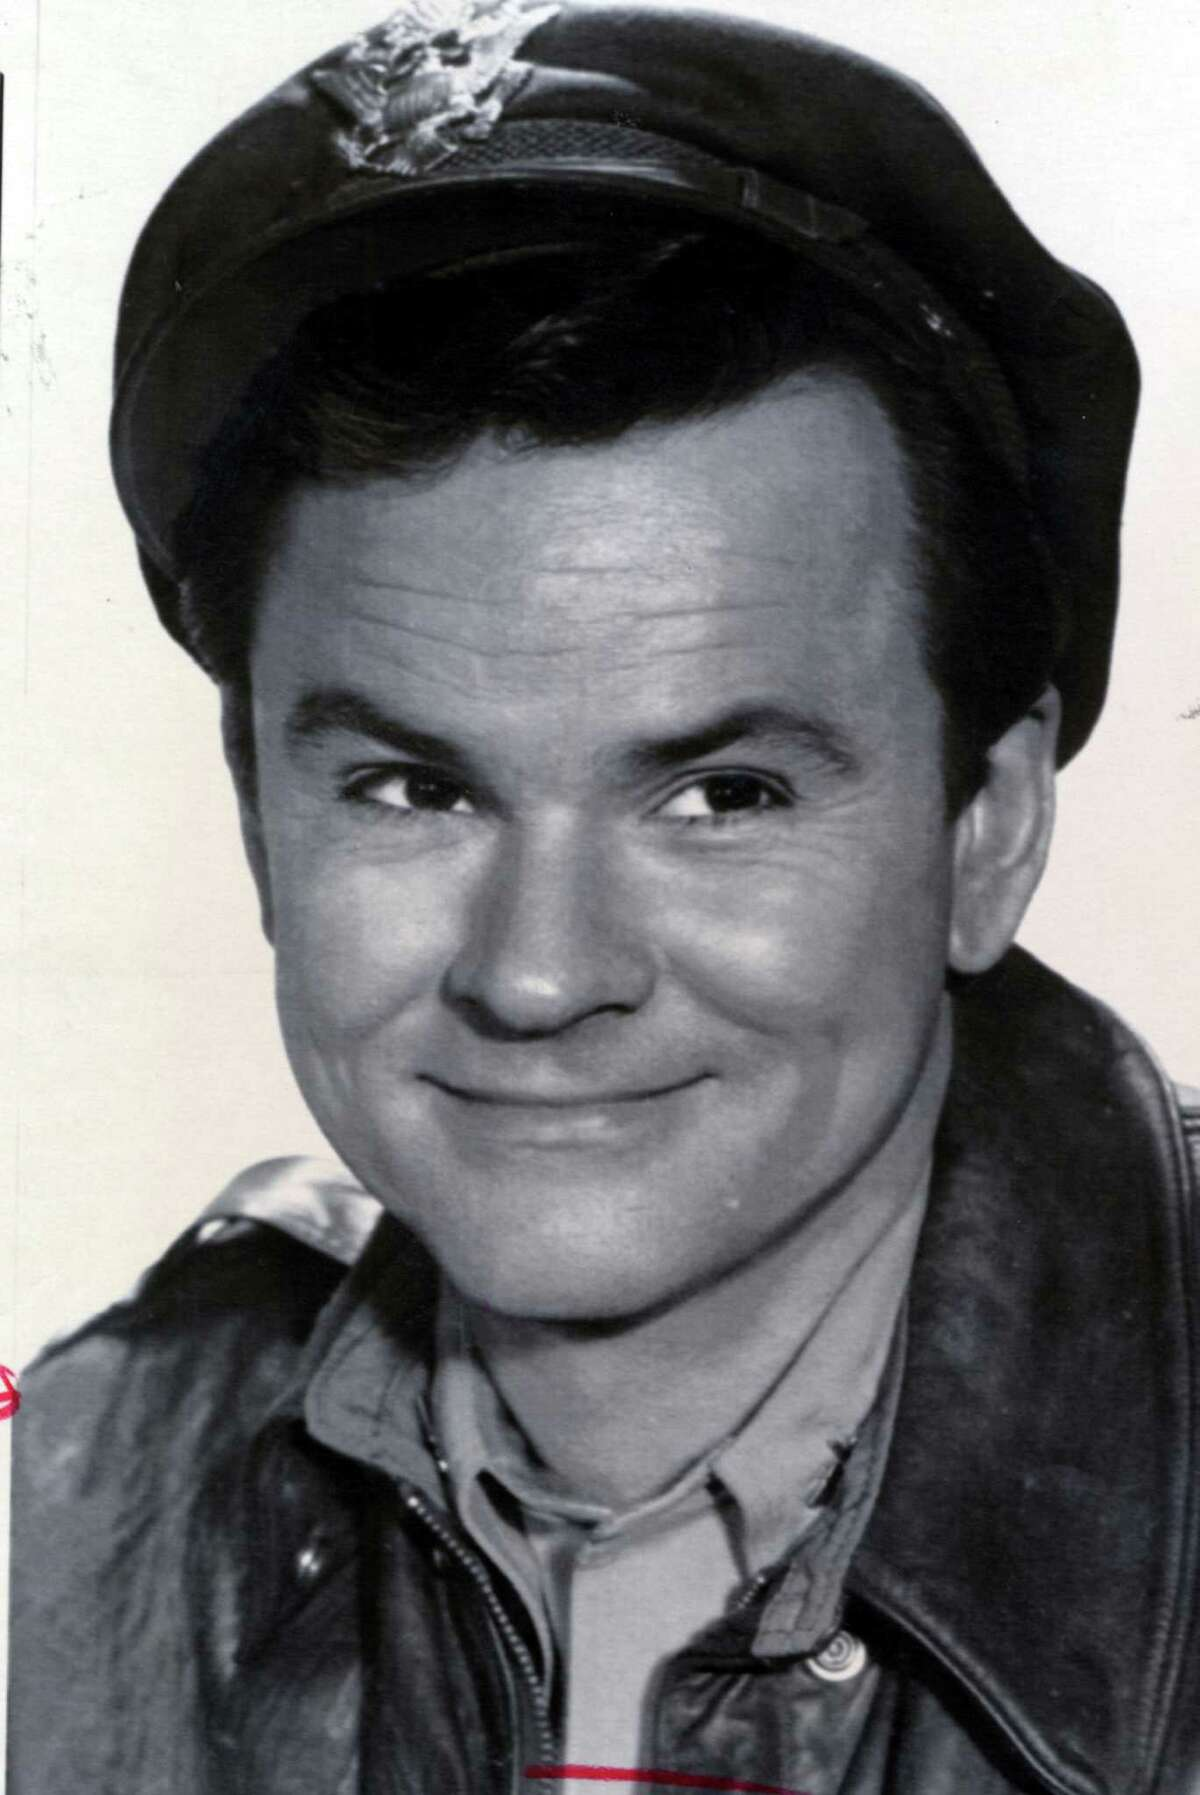 """Bob Crane on """"Hogan's Hero."""" Crane, who grew up in Stamford and worked for WICC in Bridgeport early in his radio career, cited Bridgeport as his hometown on the TV show."""